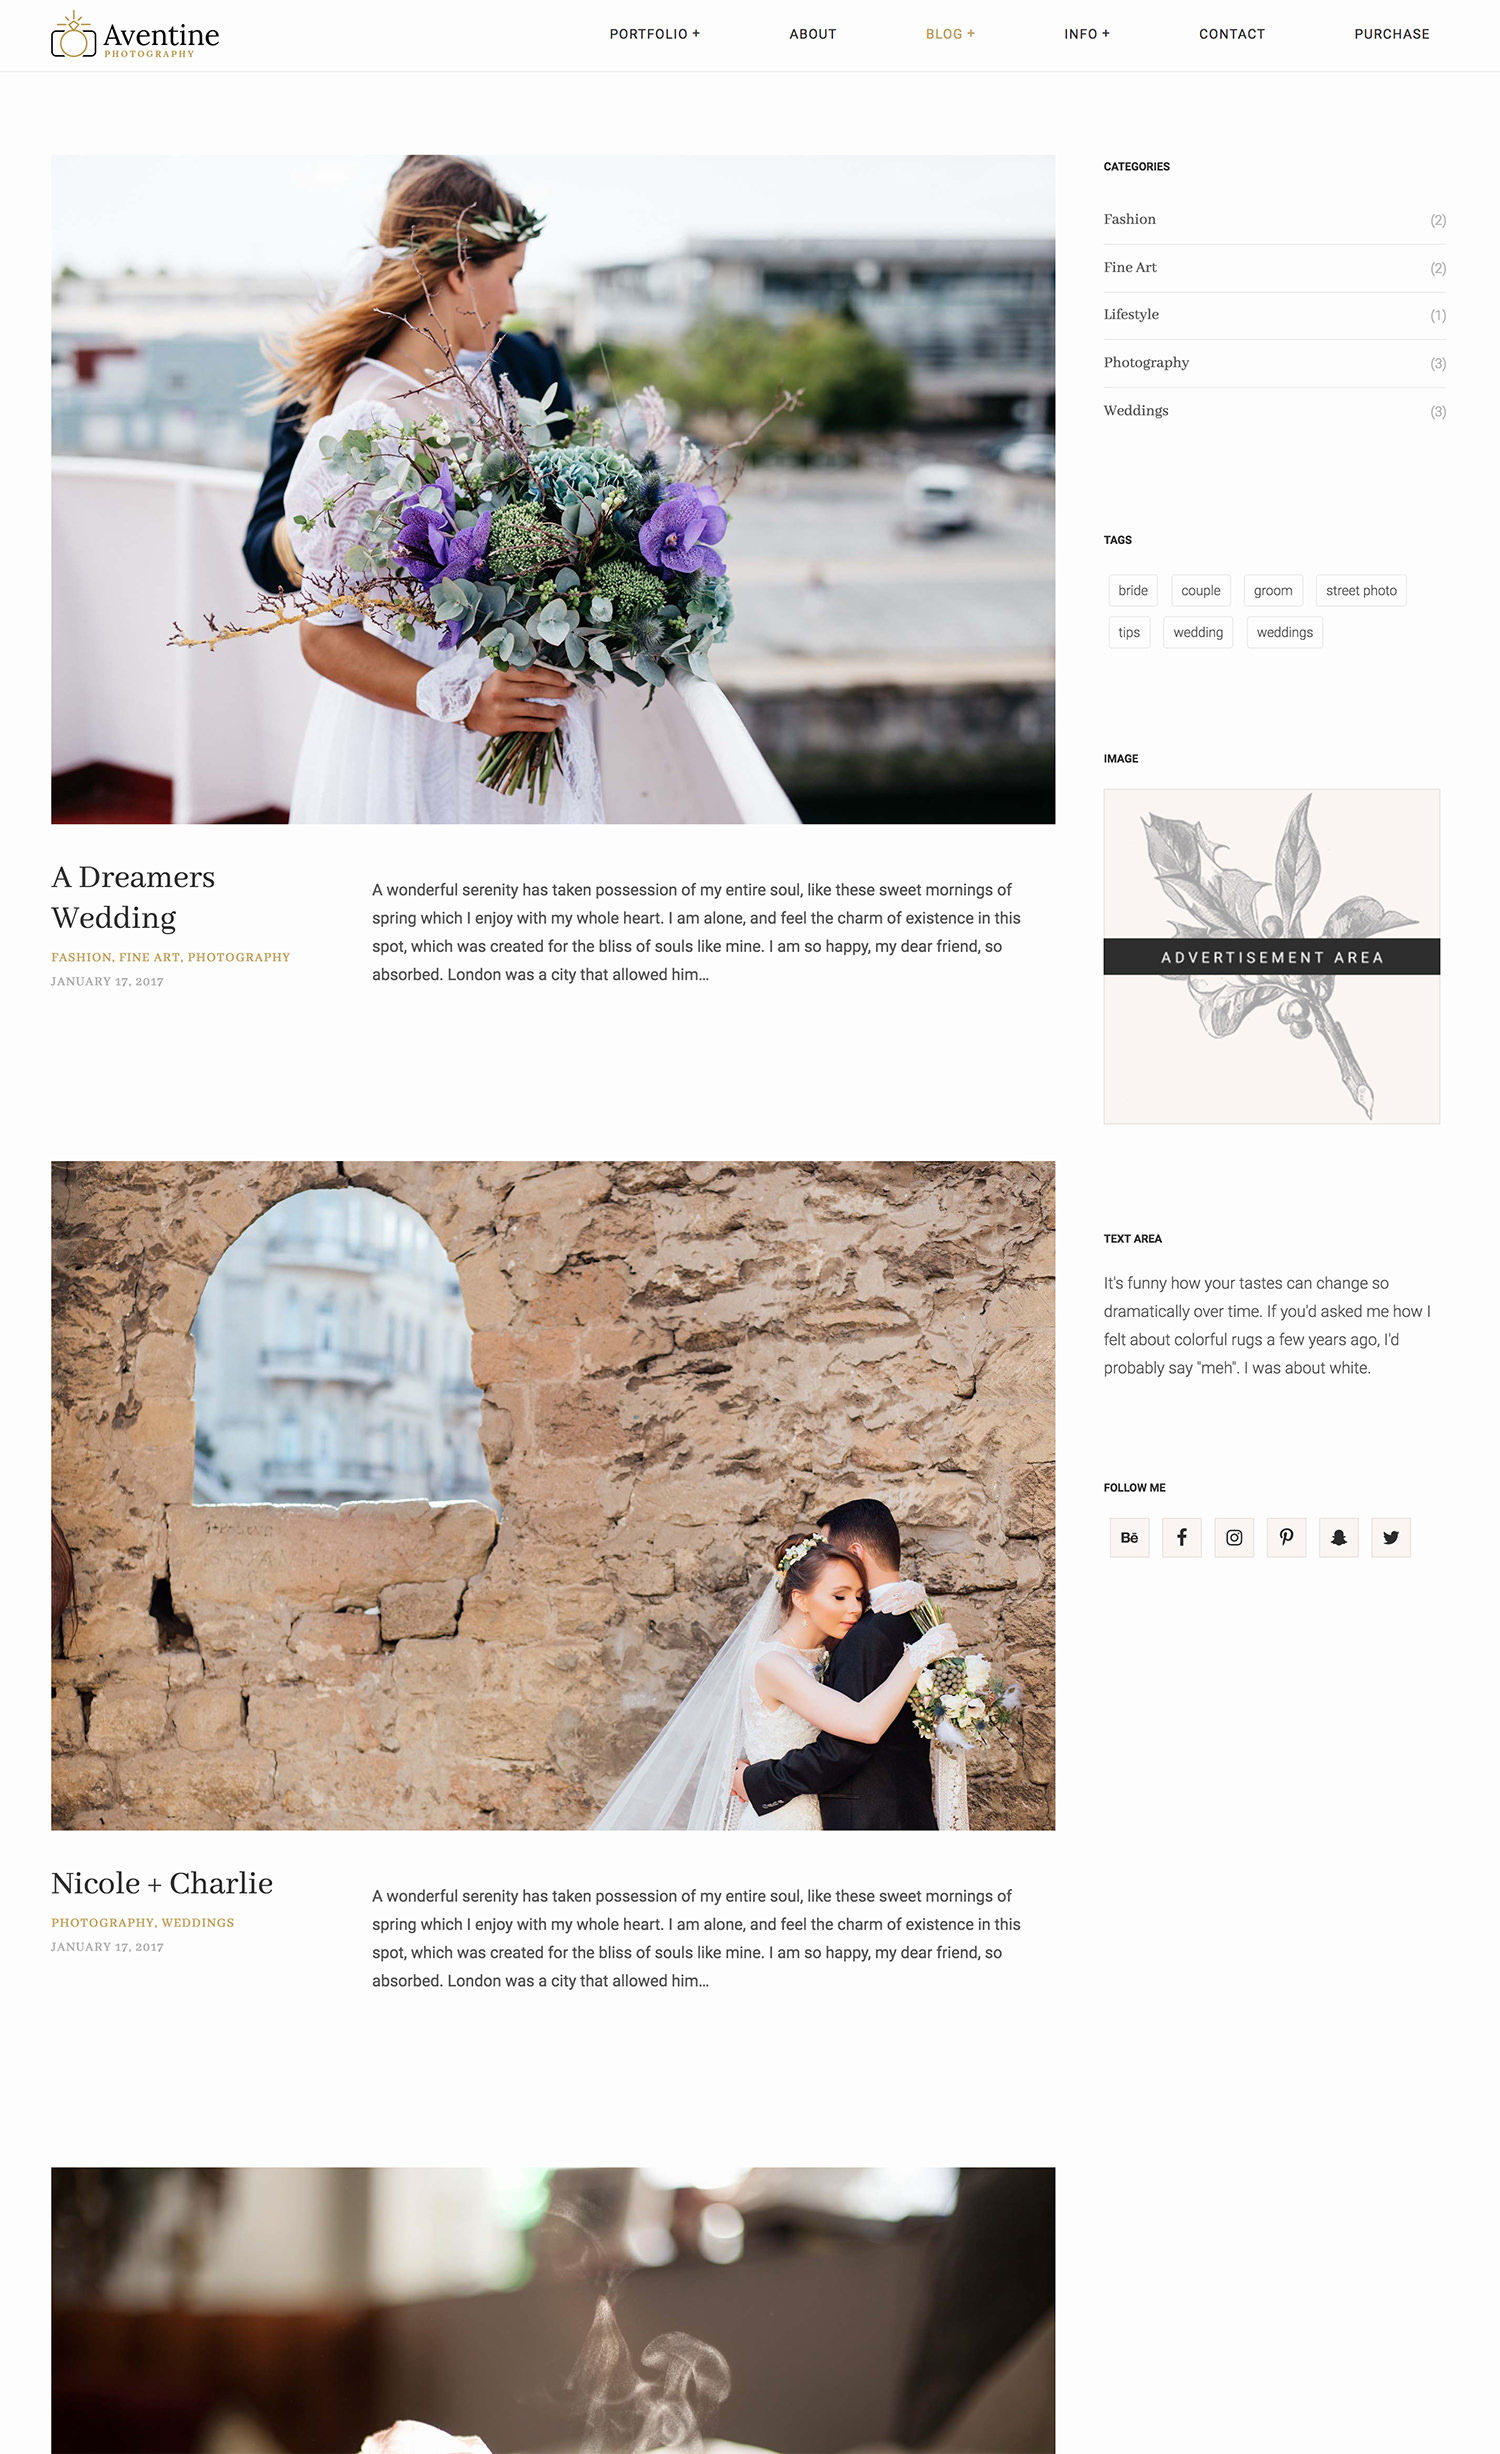 Aventine Wedding Photography WordPress Theme - modern blog layout